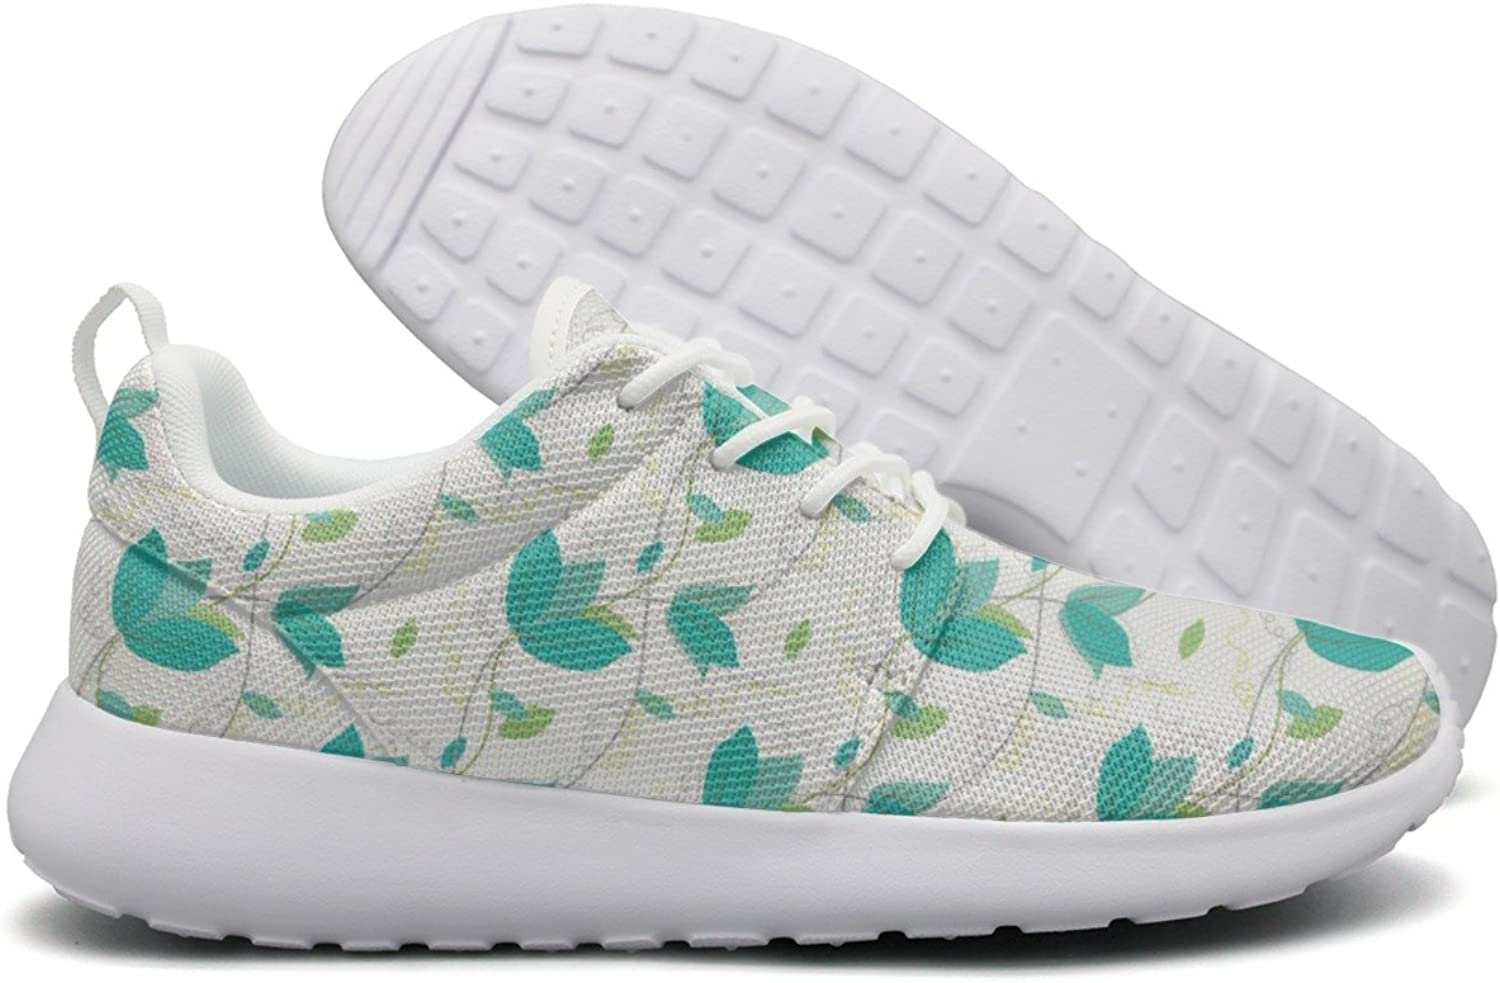 Hoohle Sports English Ivy Outdoor Live Plant Leaves White Womens Roshe One Flex Mesh Running shoes for Men